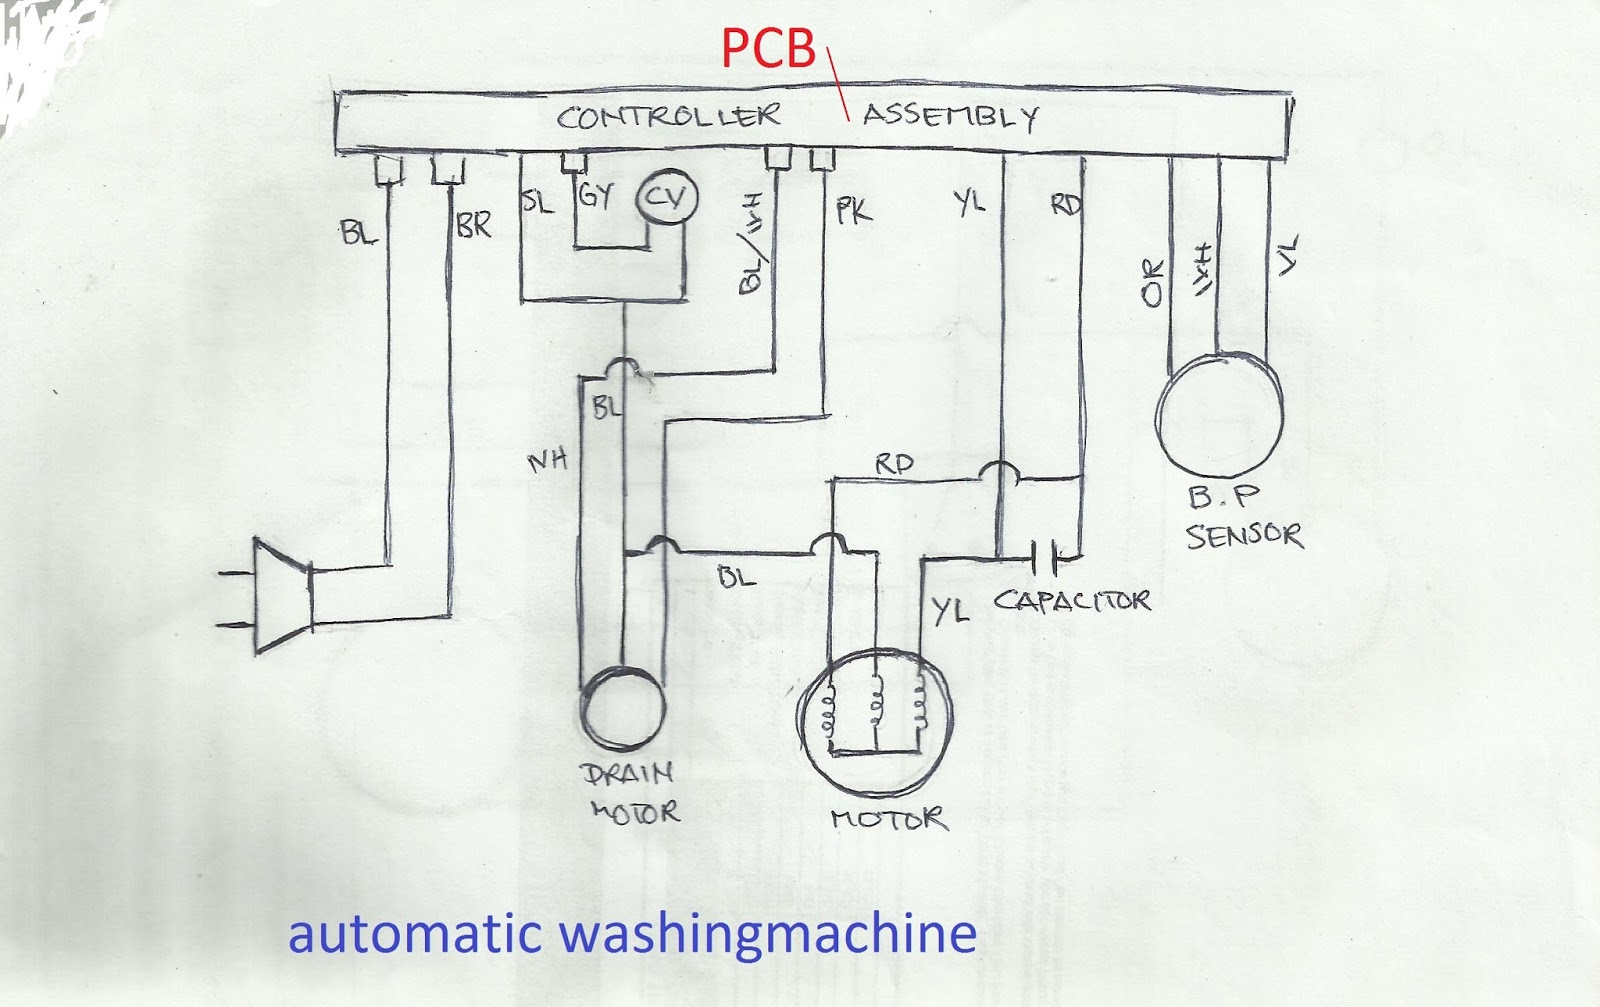 washine refrigeration and air conditioning repair wiring diagram of fridge wiring diagram manual at readyjetset.co